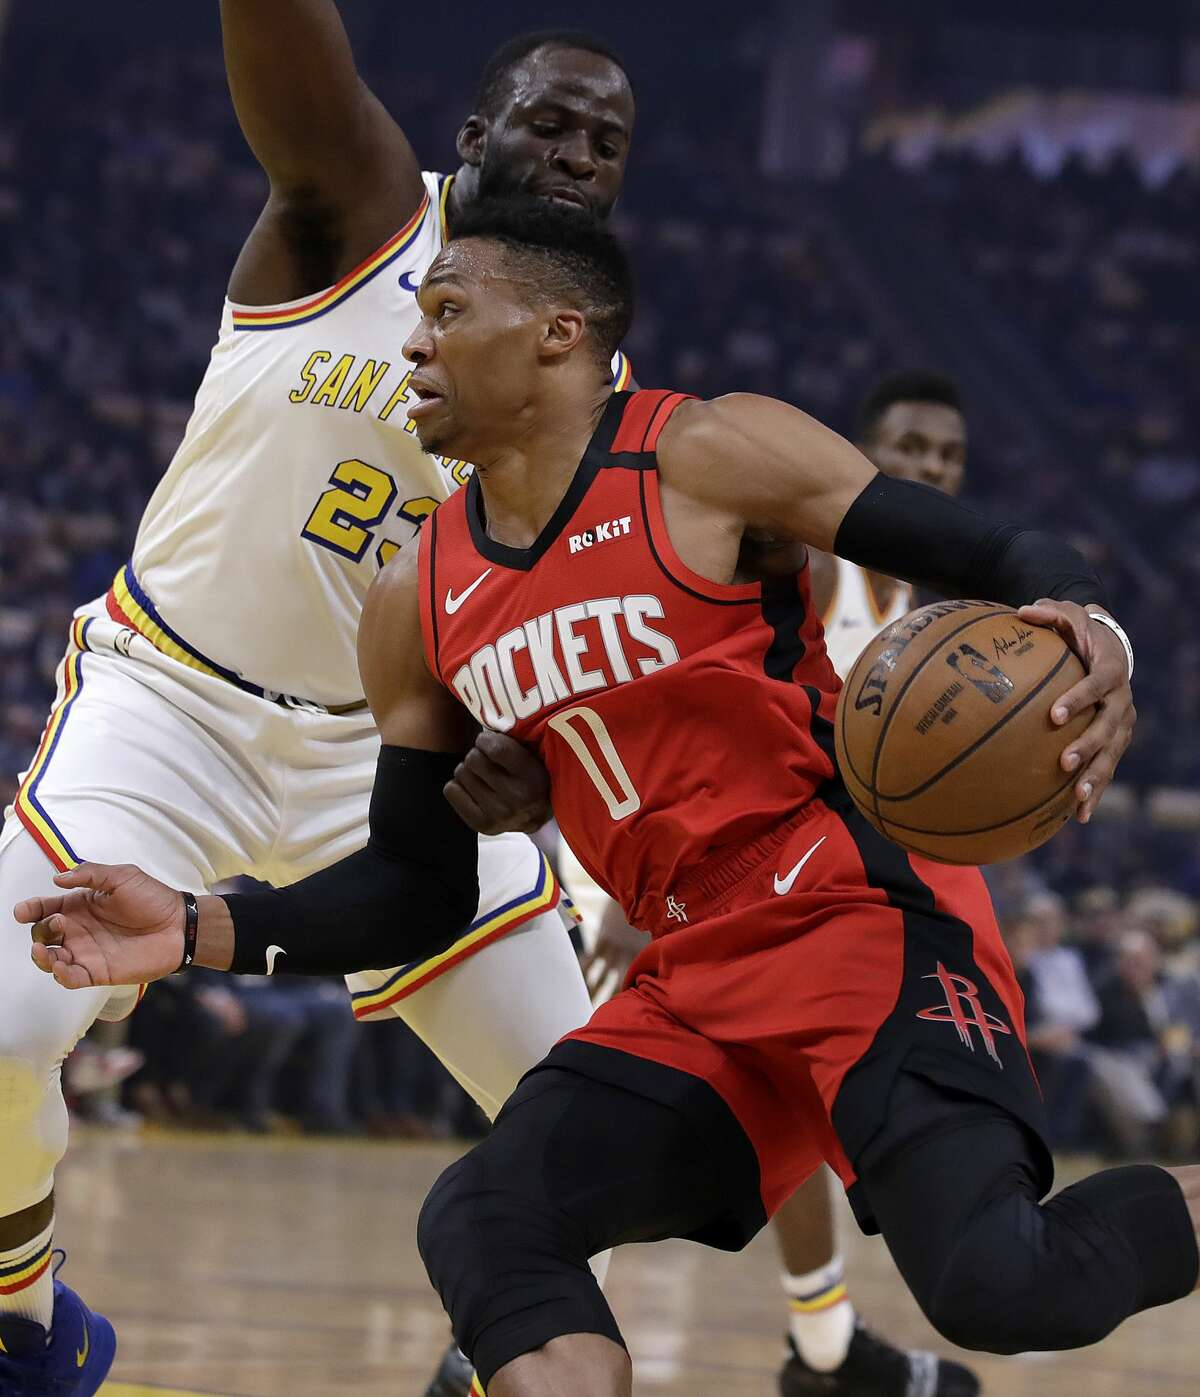 Houston Rockets' Russell Westbrook (0) drives the ball against Golden State Warriors' Draymond Green, left, during the first half of an NBA basketball game Thursday, Feb. 20, 2020, in San Francisco. (AP Photo/Ben Margot)